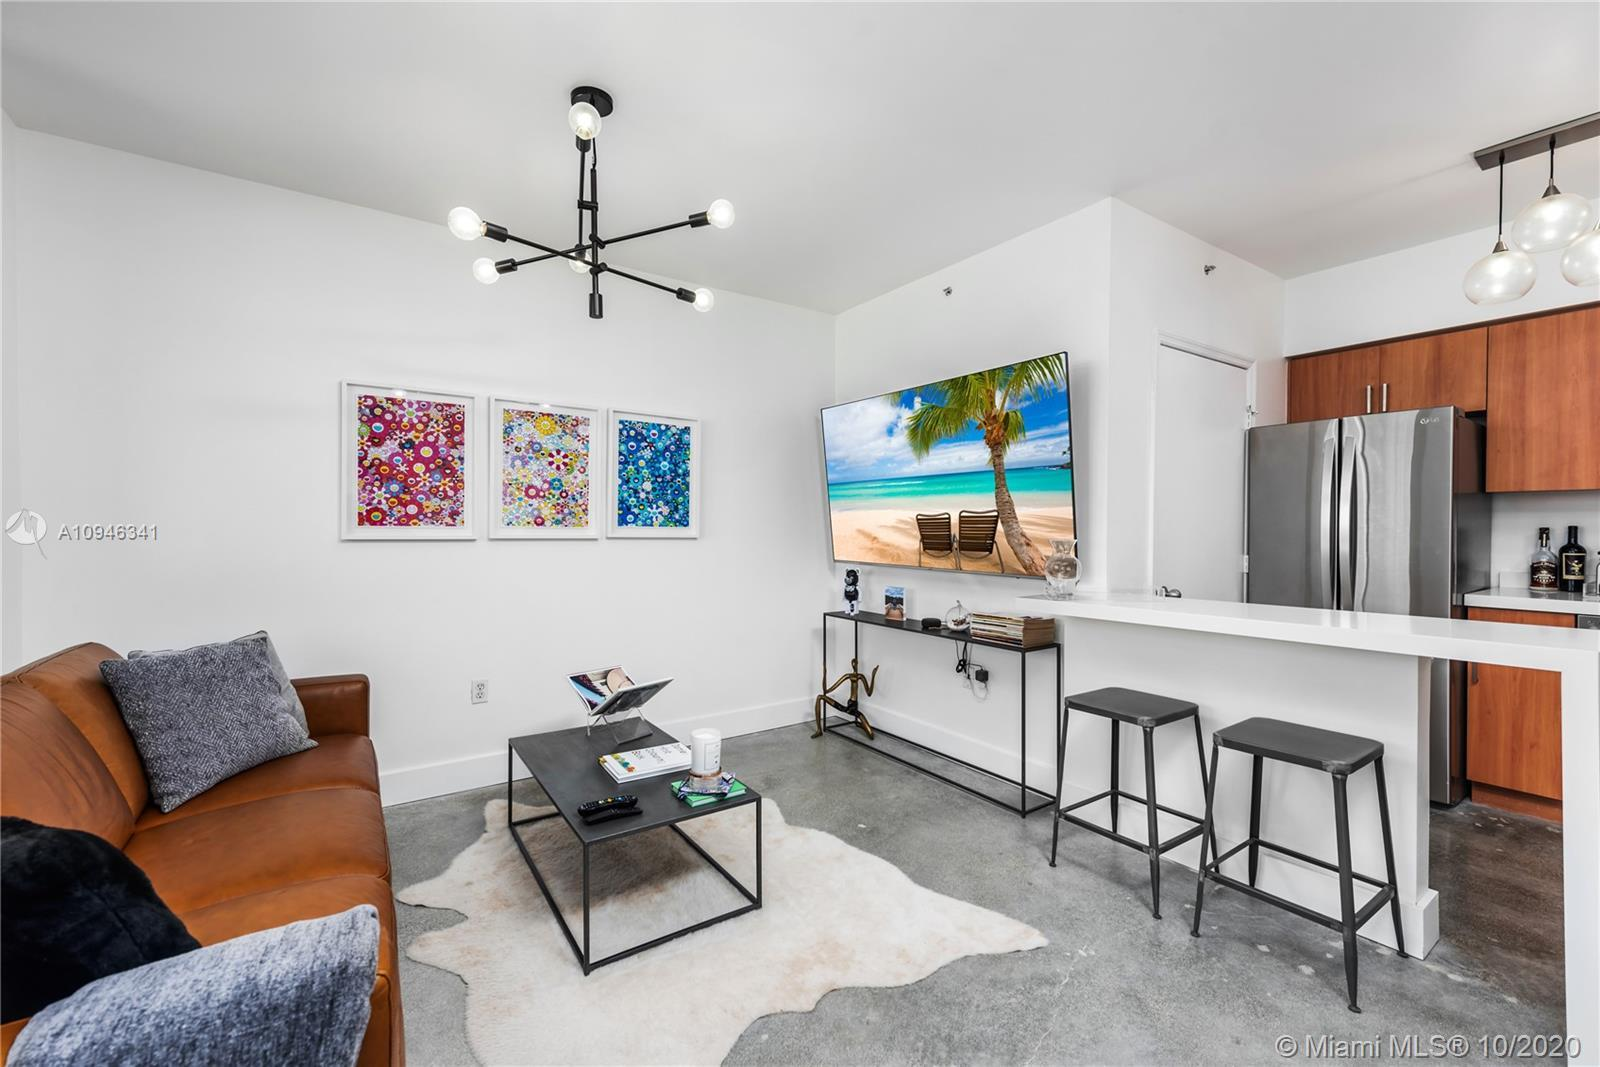 COMPLETELY RENOVATED MODERN 1/1 in the heart of South Beach! Nicest 1/1 in the building! New washer/